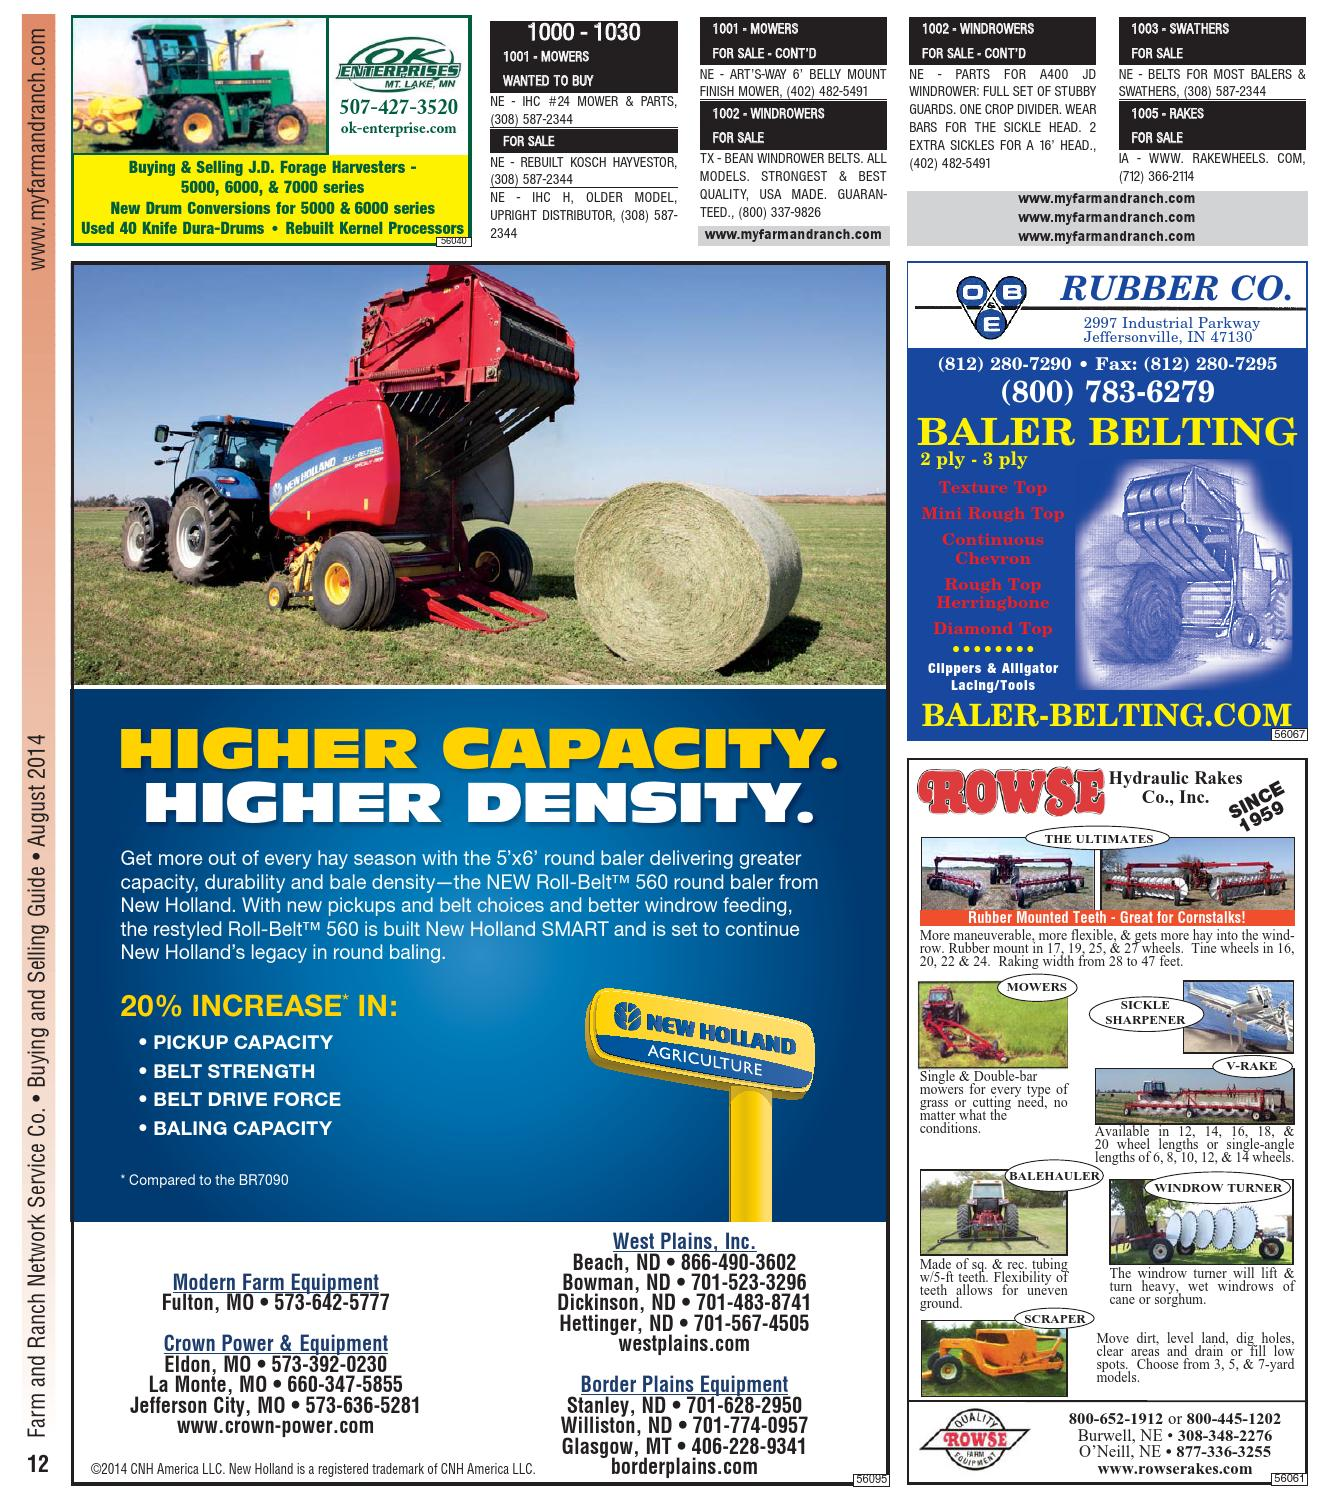 New Holland BR780 Round Baler Belts Full Set 3 Ply Mini Roughtop w//Clipper